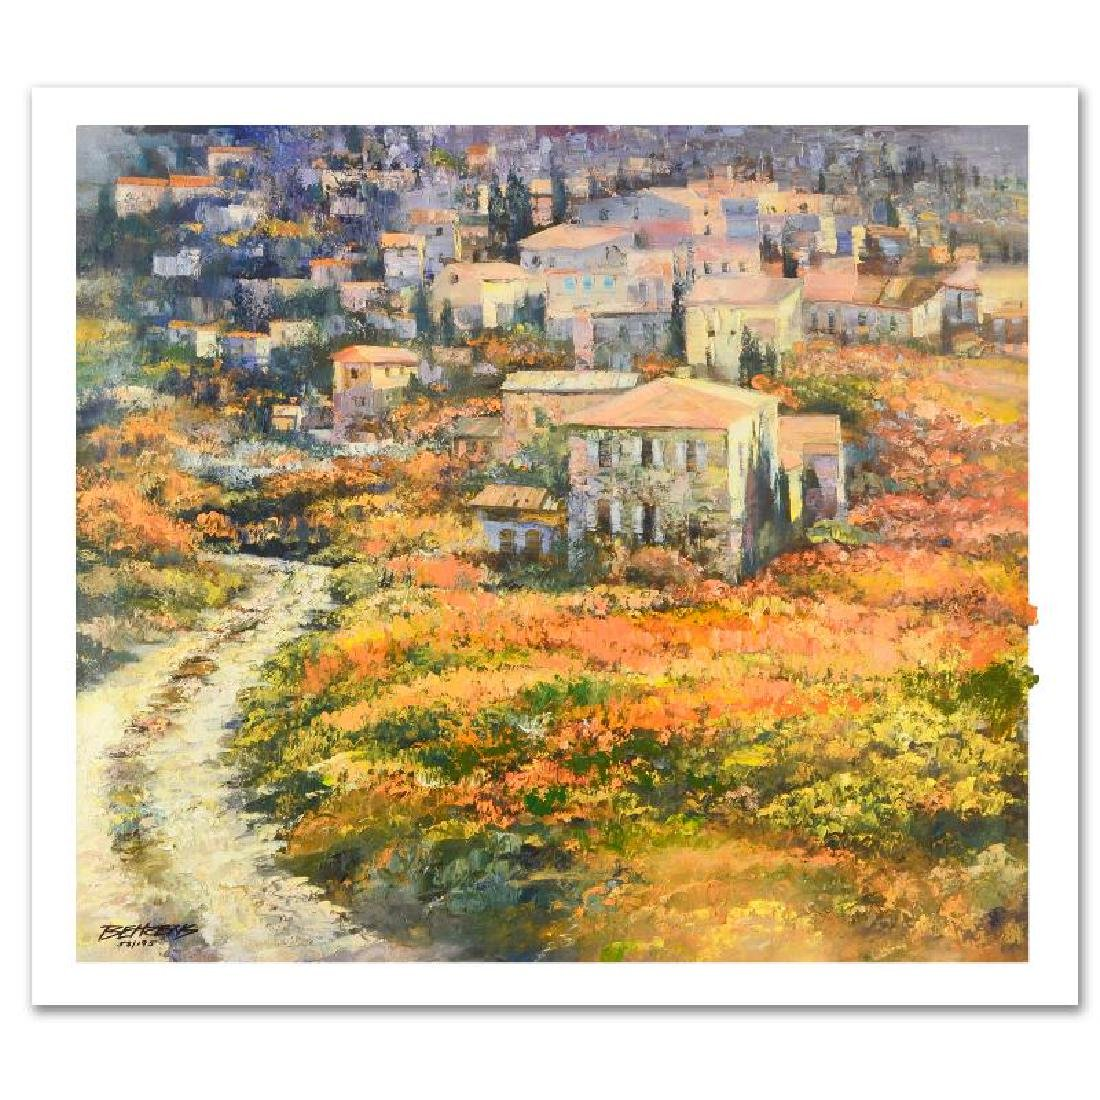 Howard Behrens Hand Embellished Giclee on Canvas